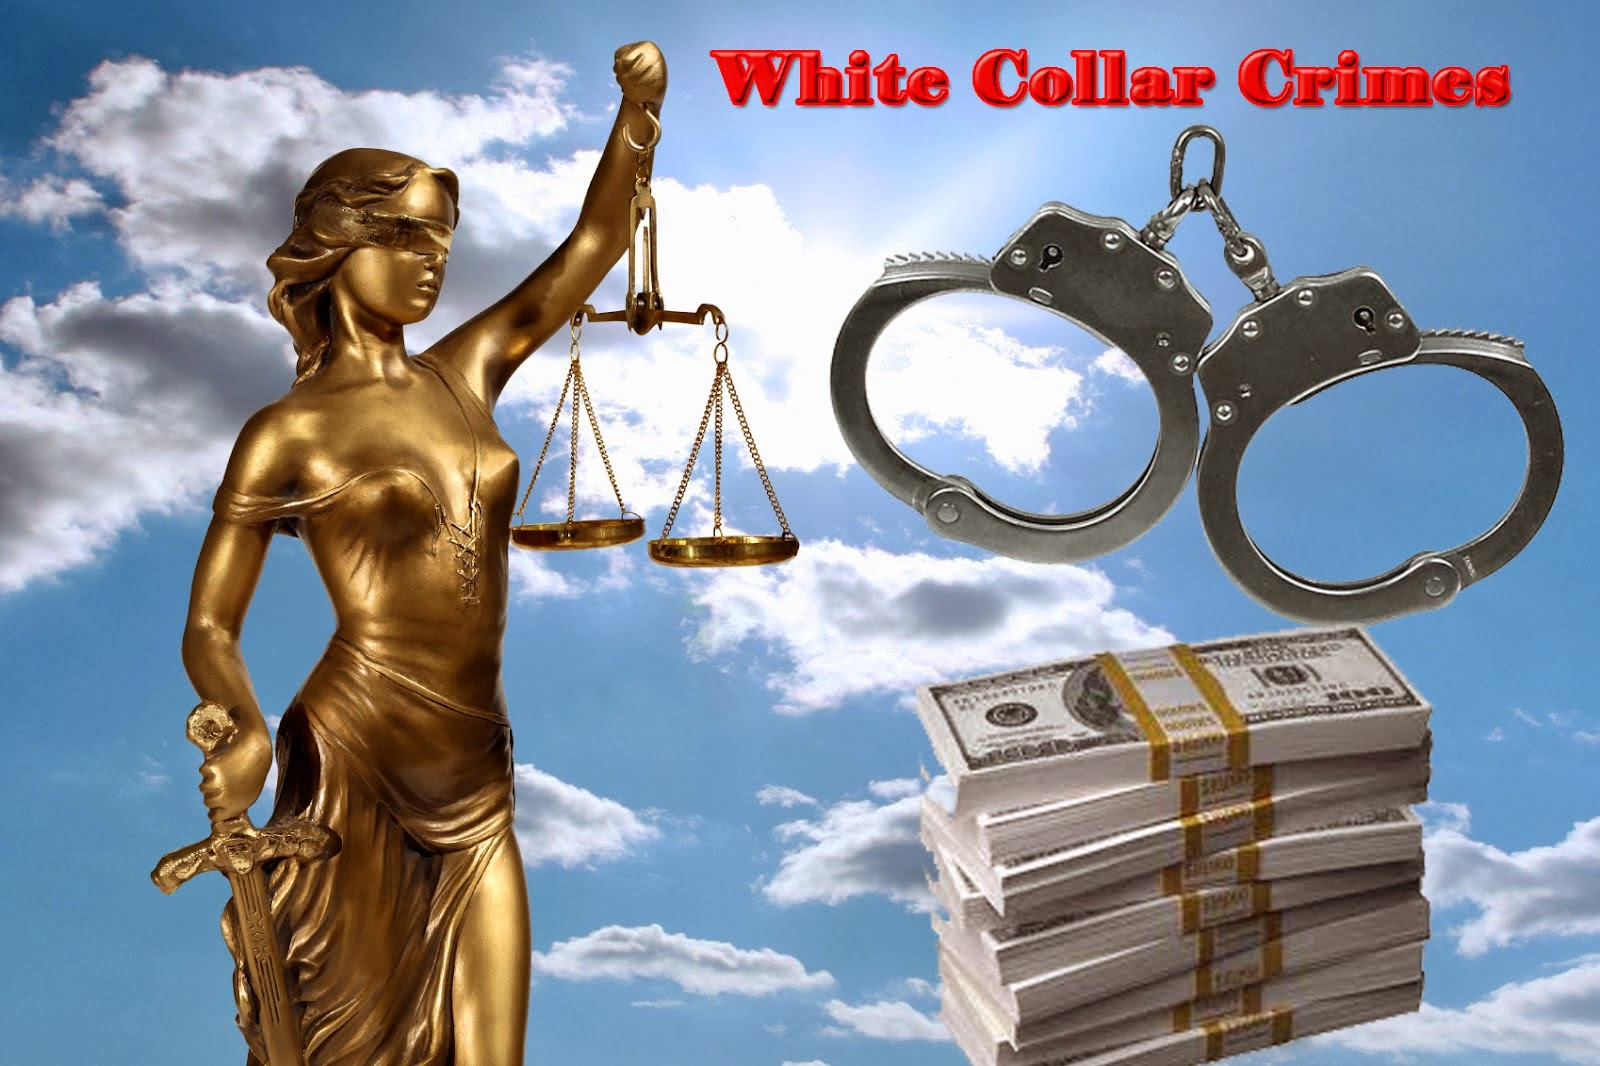 an essay on white collar crimes This essay looks at three areas of white collar crime that have seen prosecutorial  statute stretching: fraud,[20] obstruction-of-justice,[21] and.